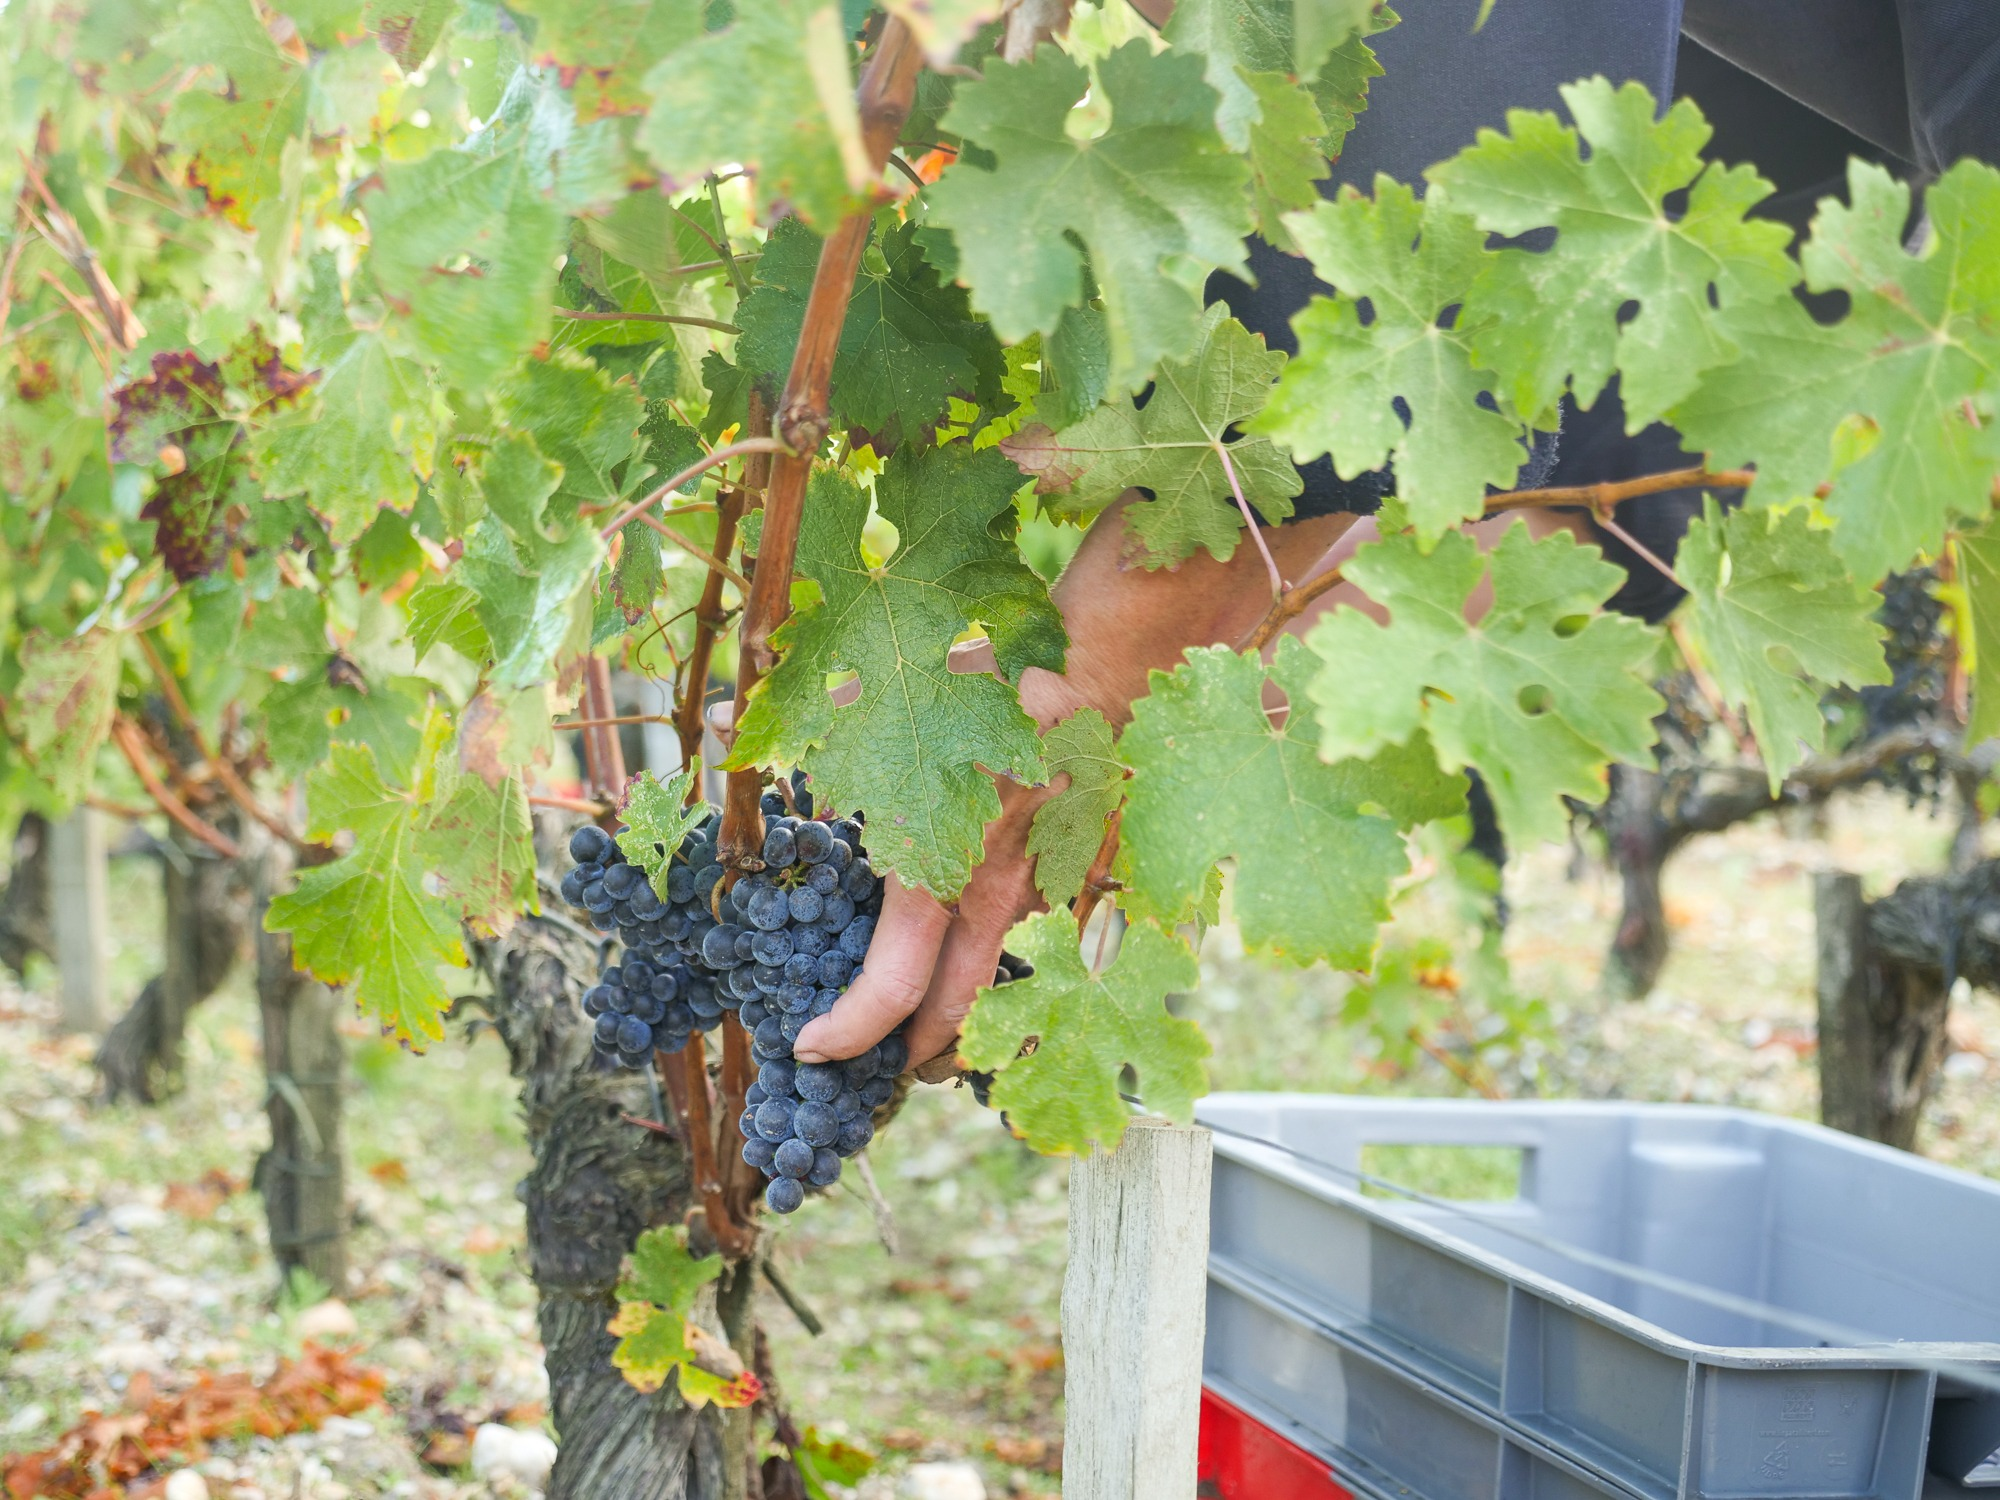 Can Viticulture Offer A Solution for Marginalised People? - Chateau Pedesclaux